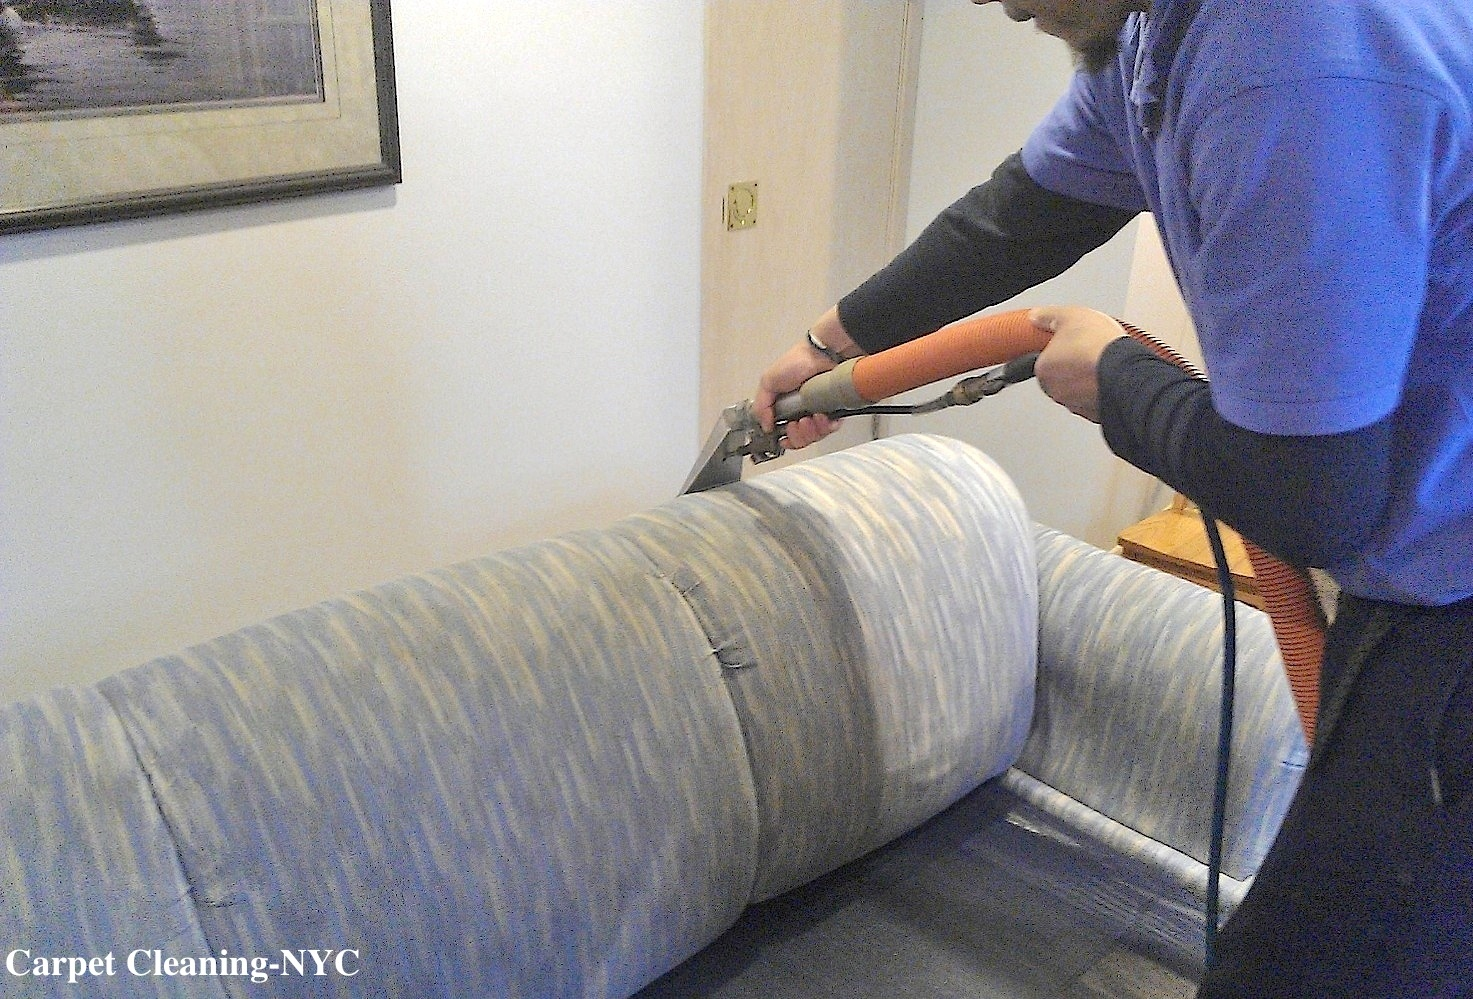 Sofa Service Carpet Cleaning Upholstery Cleaning Mattress Cleaning